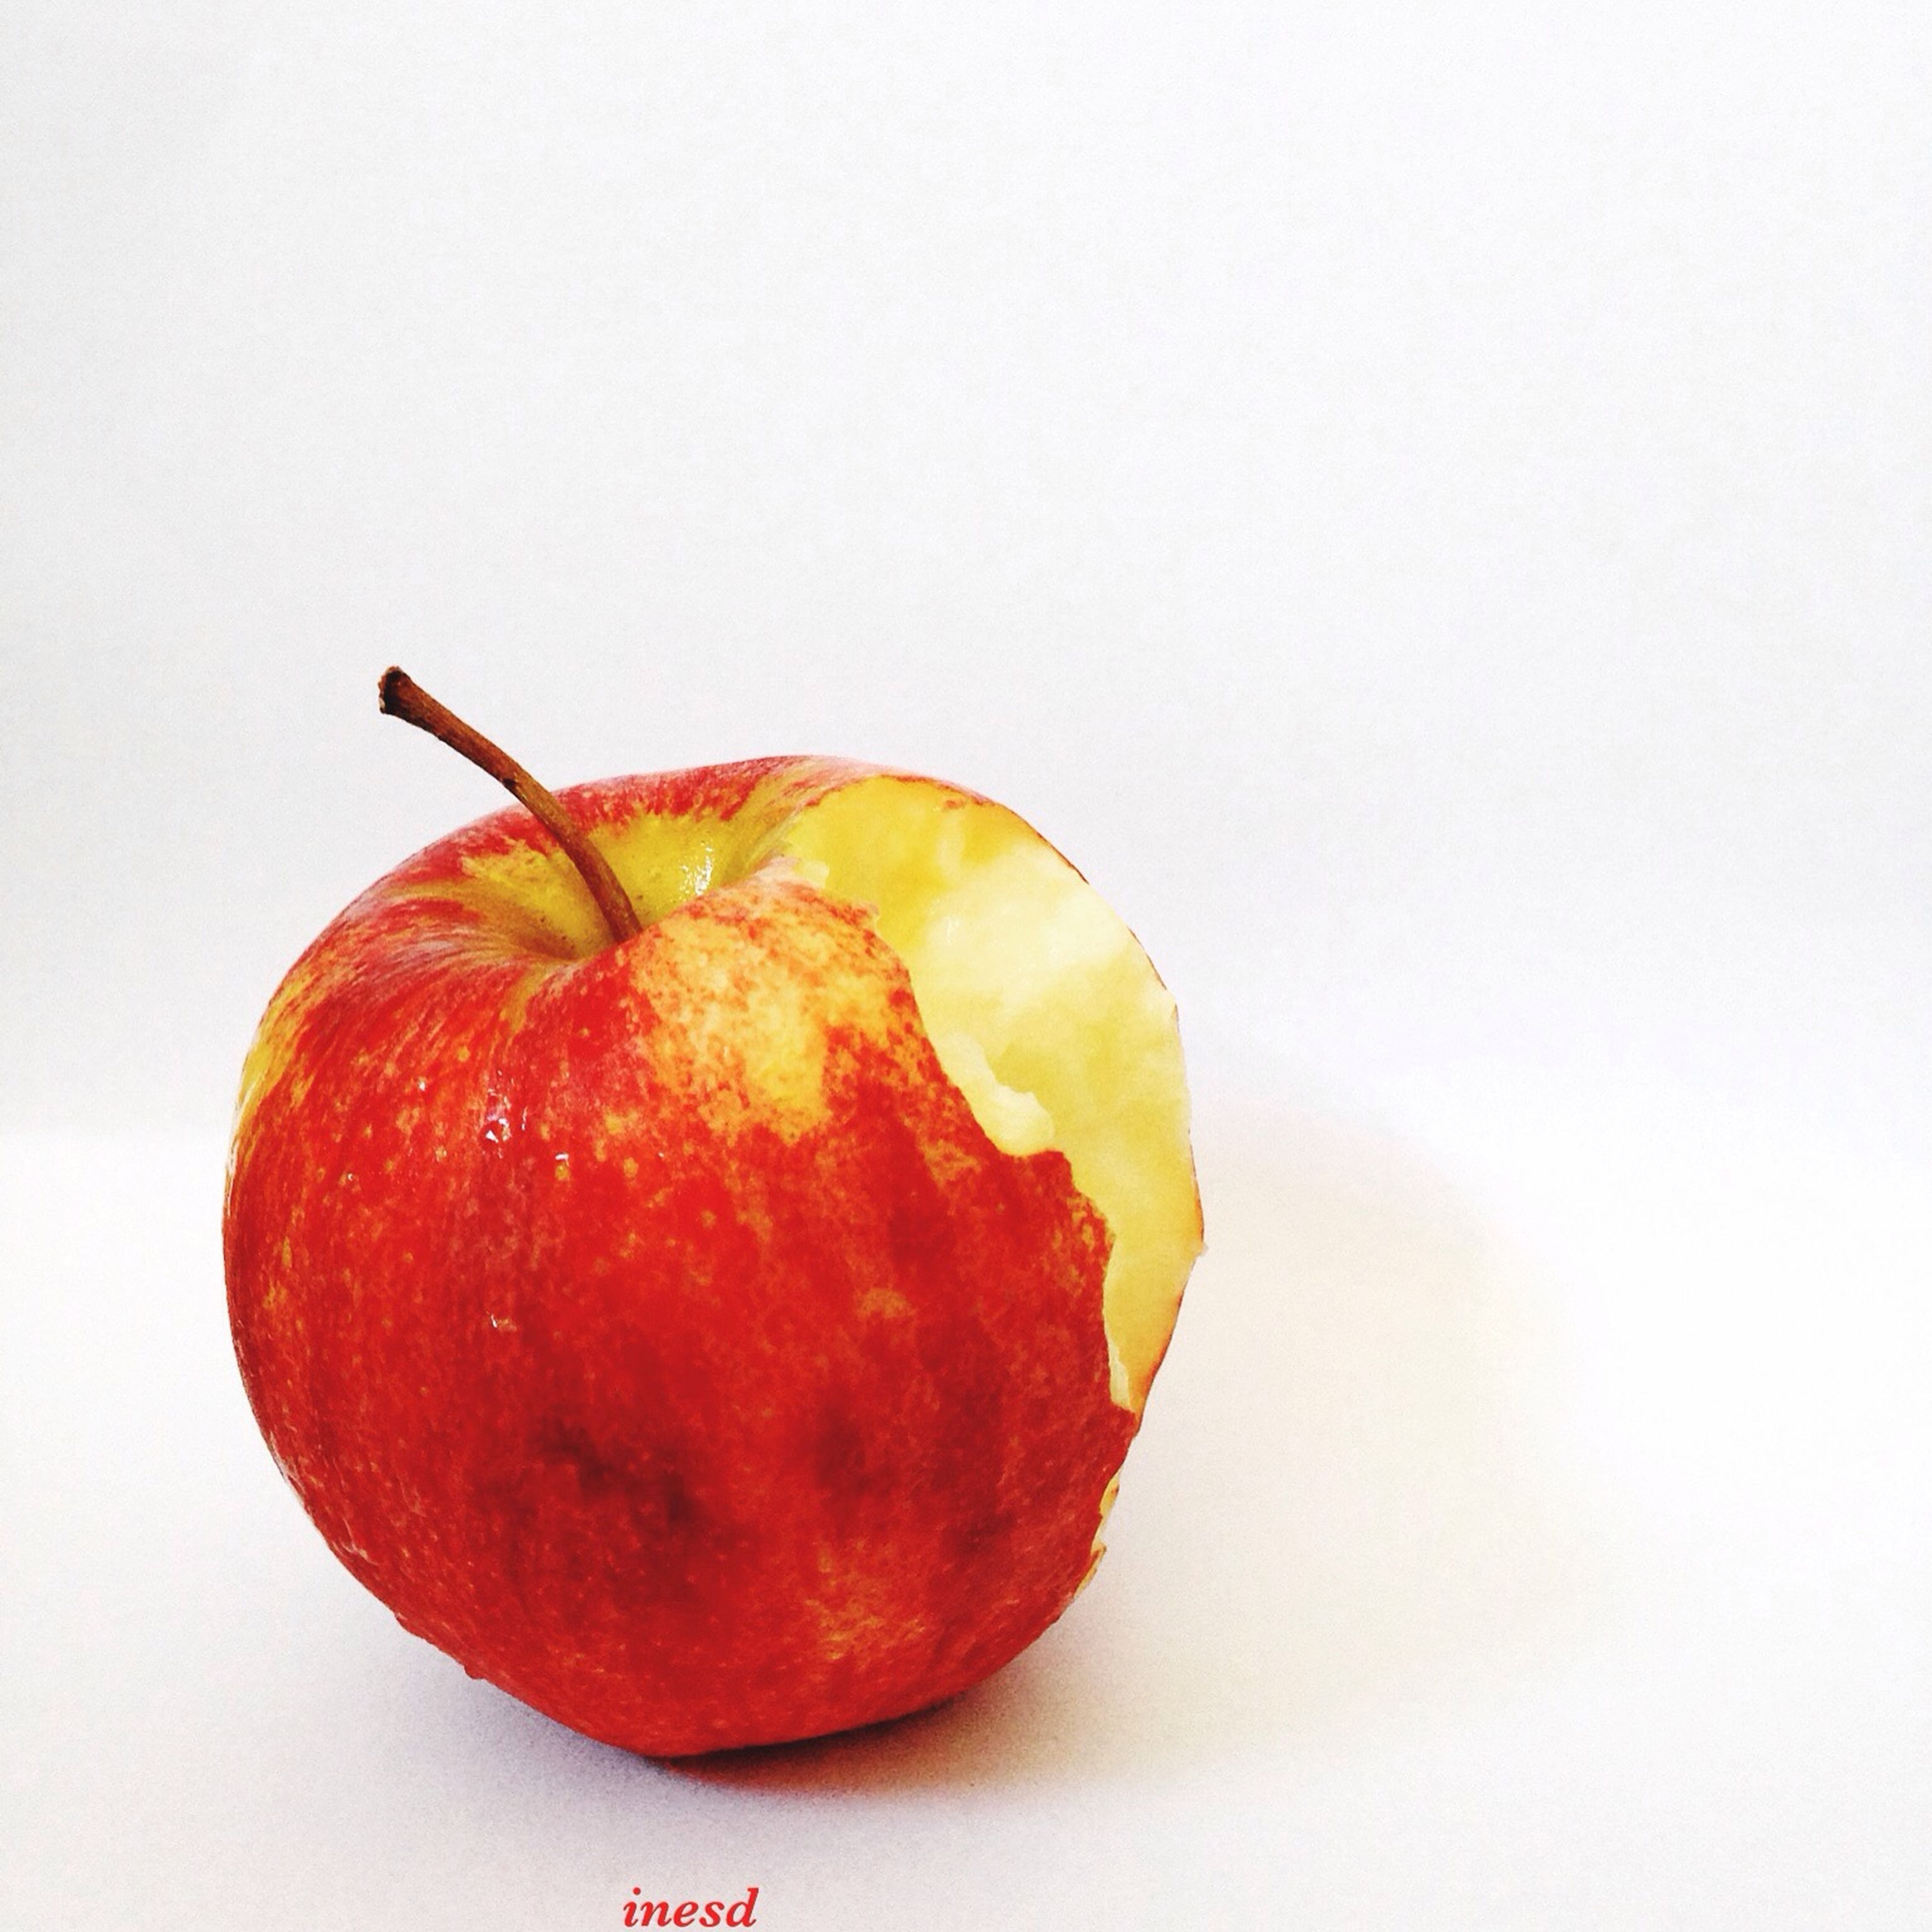 fruit, food and drink, food, studio shot, freshness, healthy eating, white background, red, copy space, still life, close-up, ripe, single object, cut out, organic, apple, apple - fruit, juicy, indoors, vibrant color